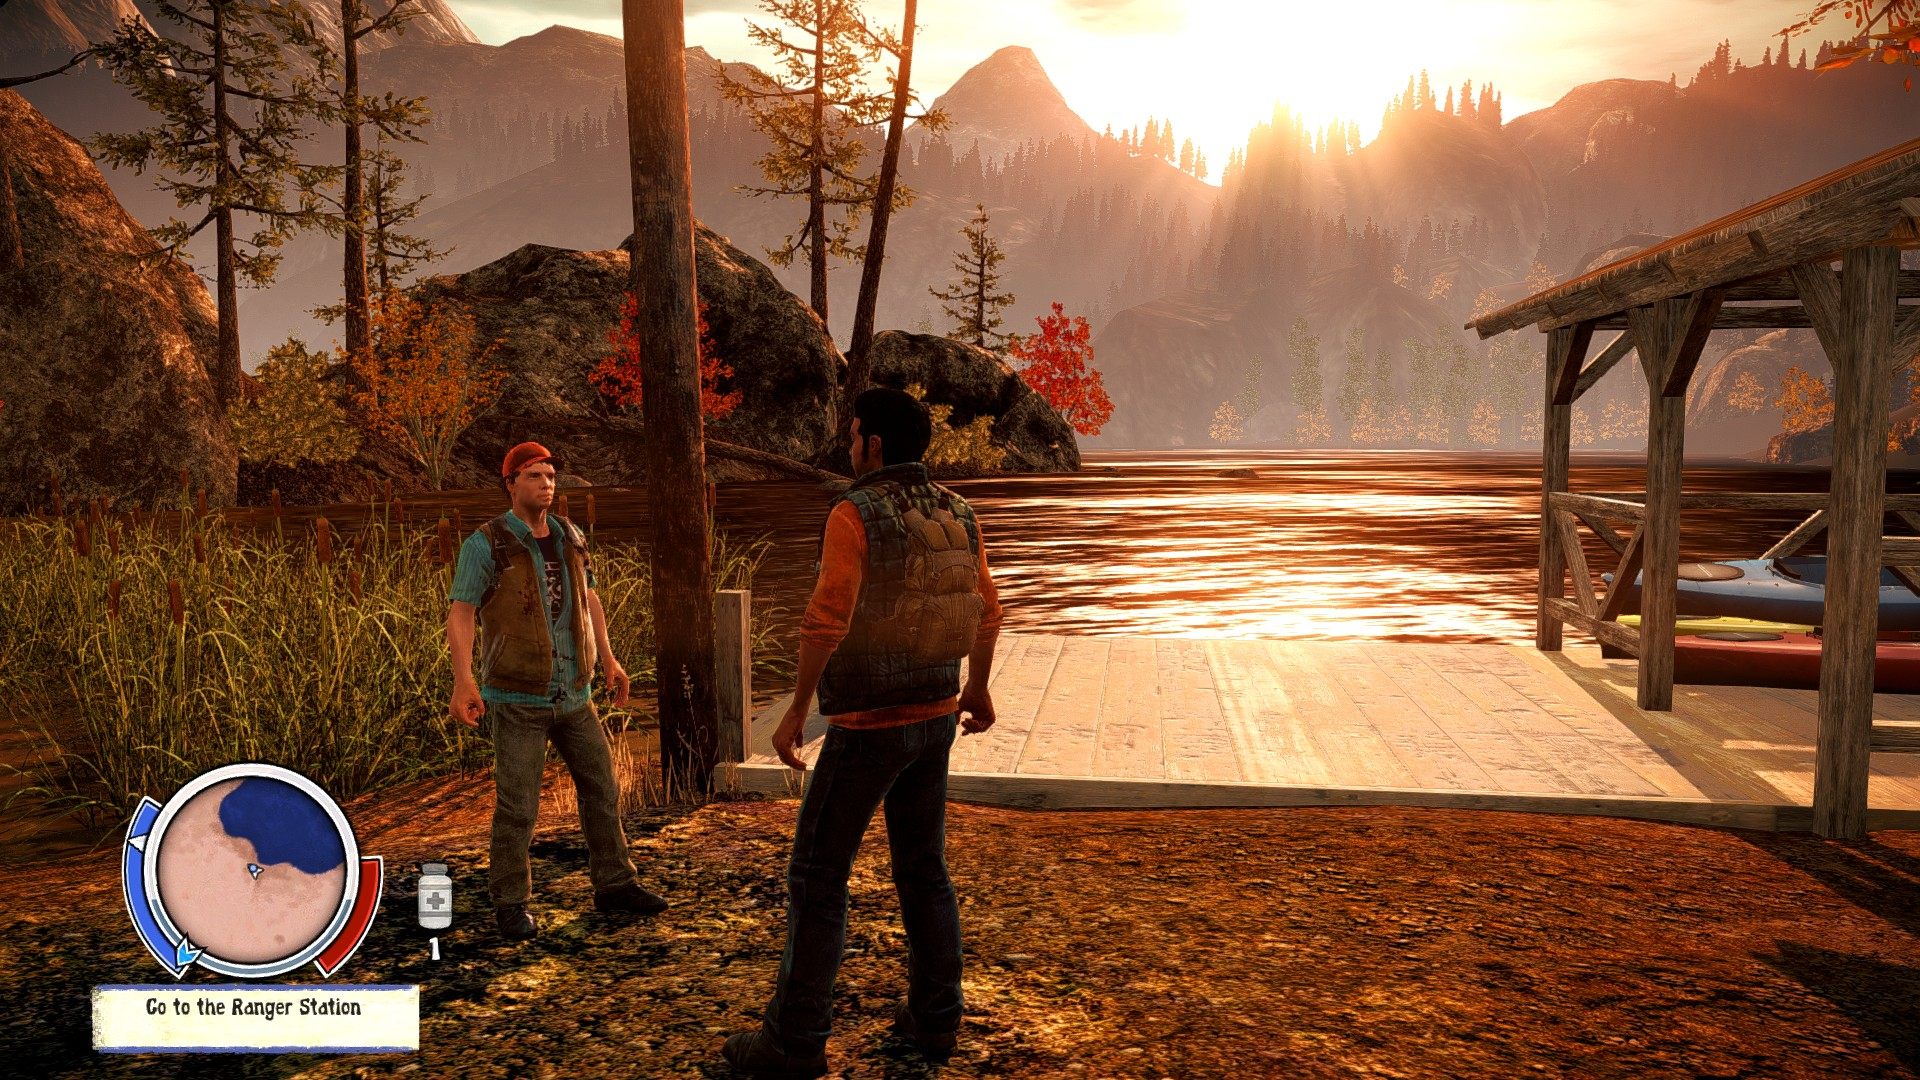 state of decay yose download free